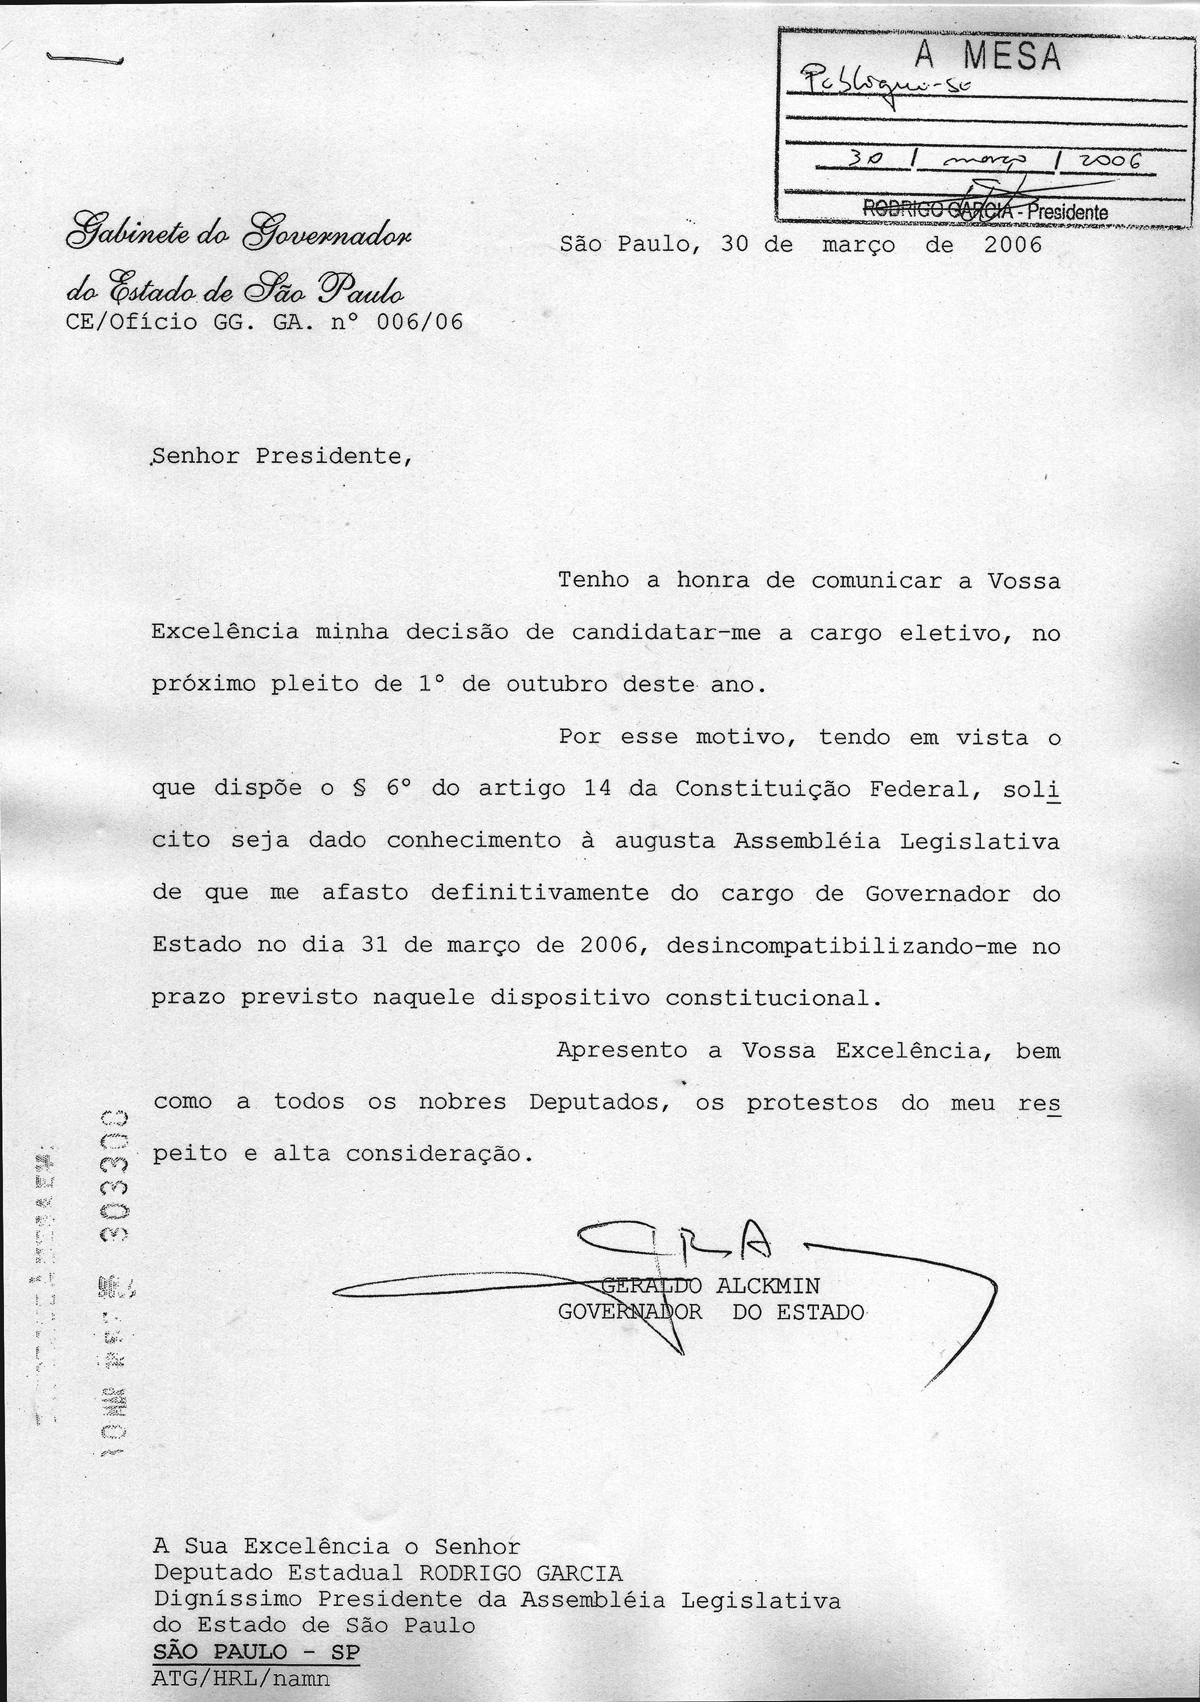 <a style='float:right' href='https://www3.al.sp.gov.br/repositorio/noticia/03-2008/carta.jpg' target=_blank><img src='/_img/material-file-download-white.png' width='14px' alt='Clique para baixar a imagem'></a>